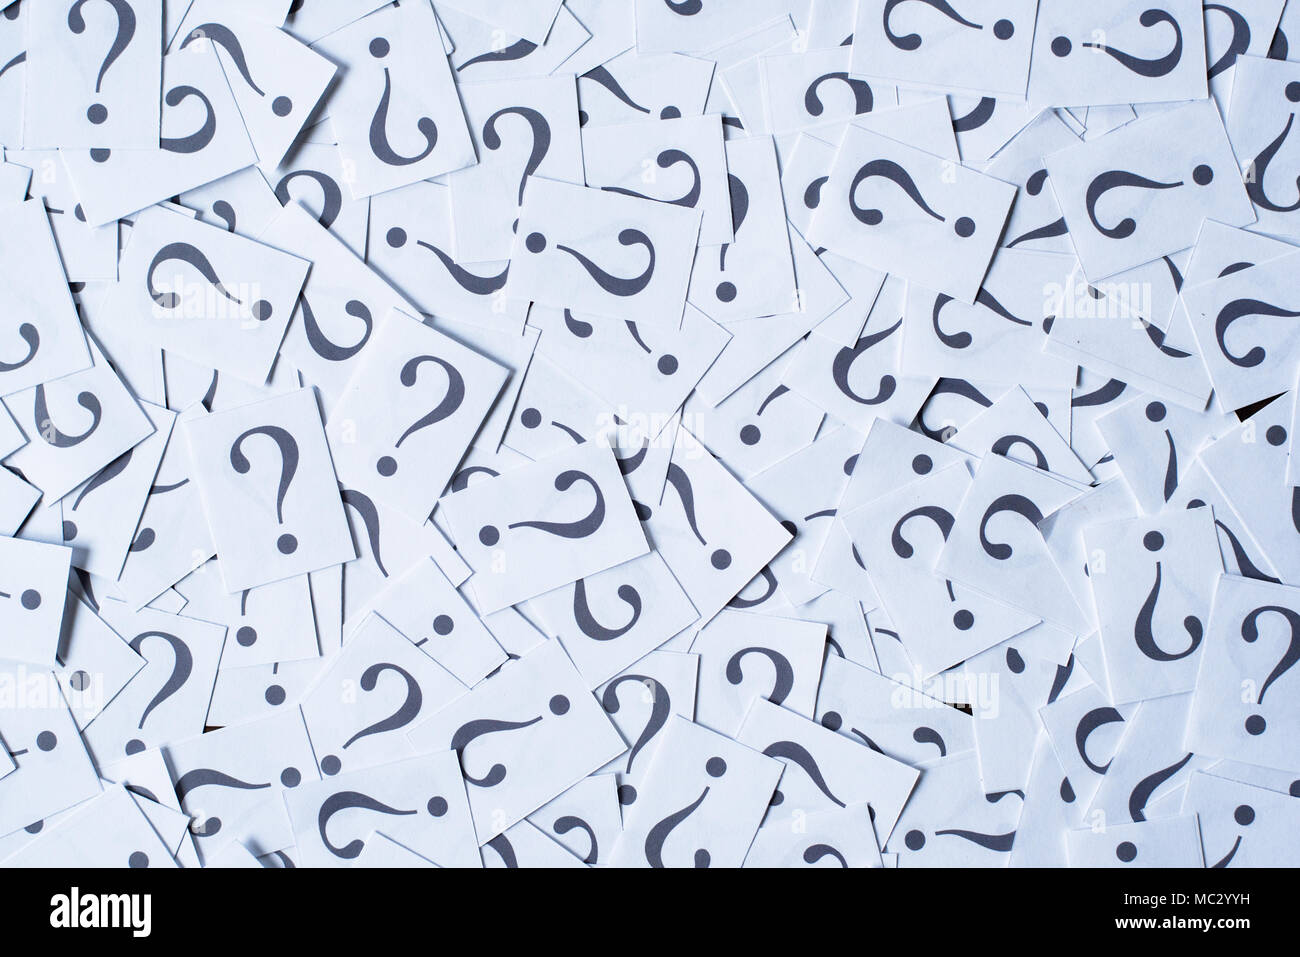 heap of white paper note with QUESTION MARK as background. FAQ and Q&A concept - Stock Image